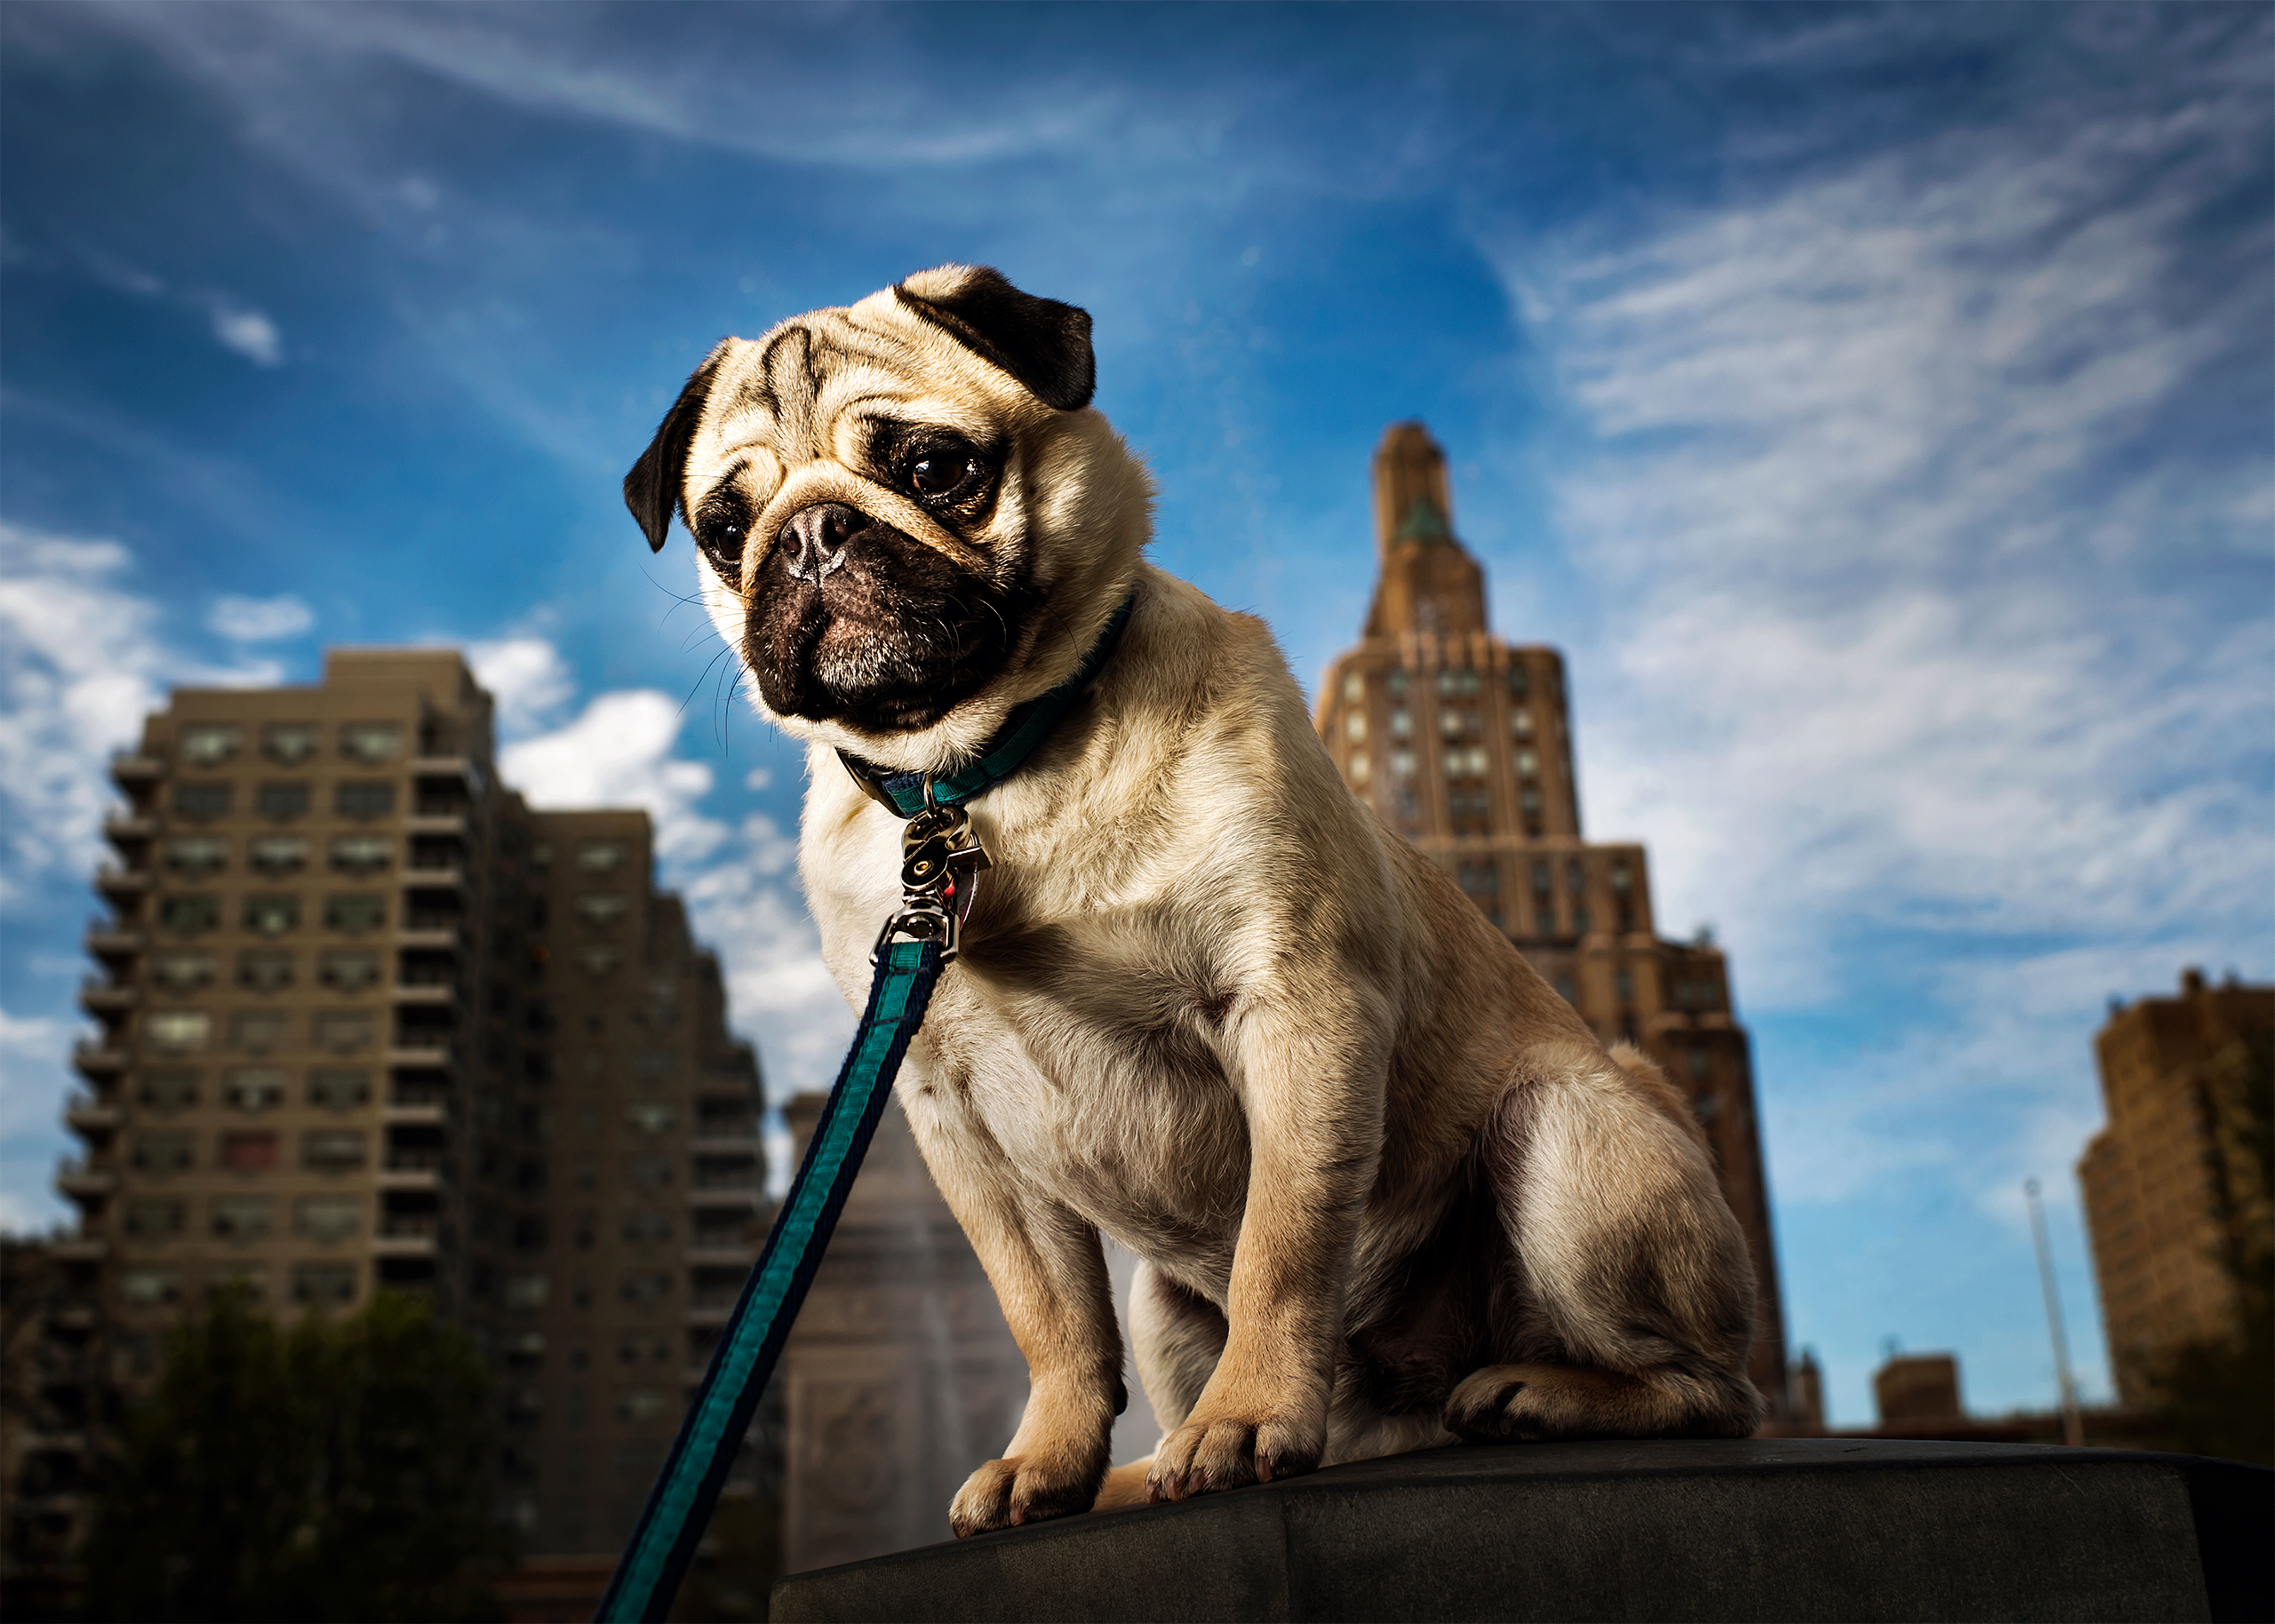 Bucky, a 1 1/2 year old Pug photographed in New York, NY on April 23, 2017.